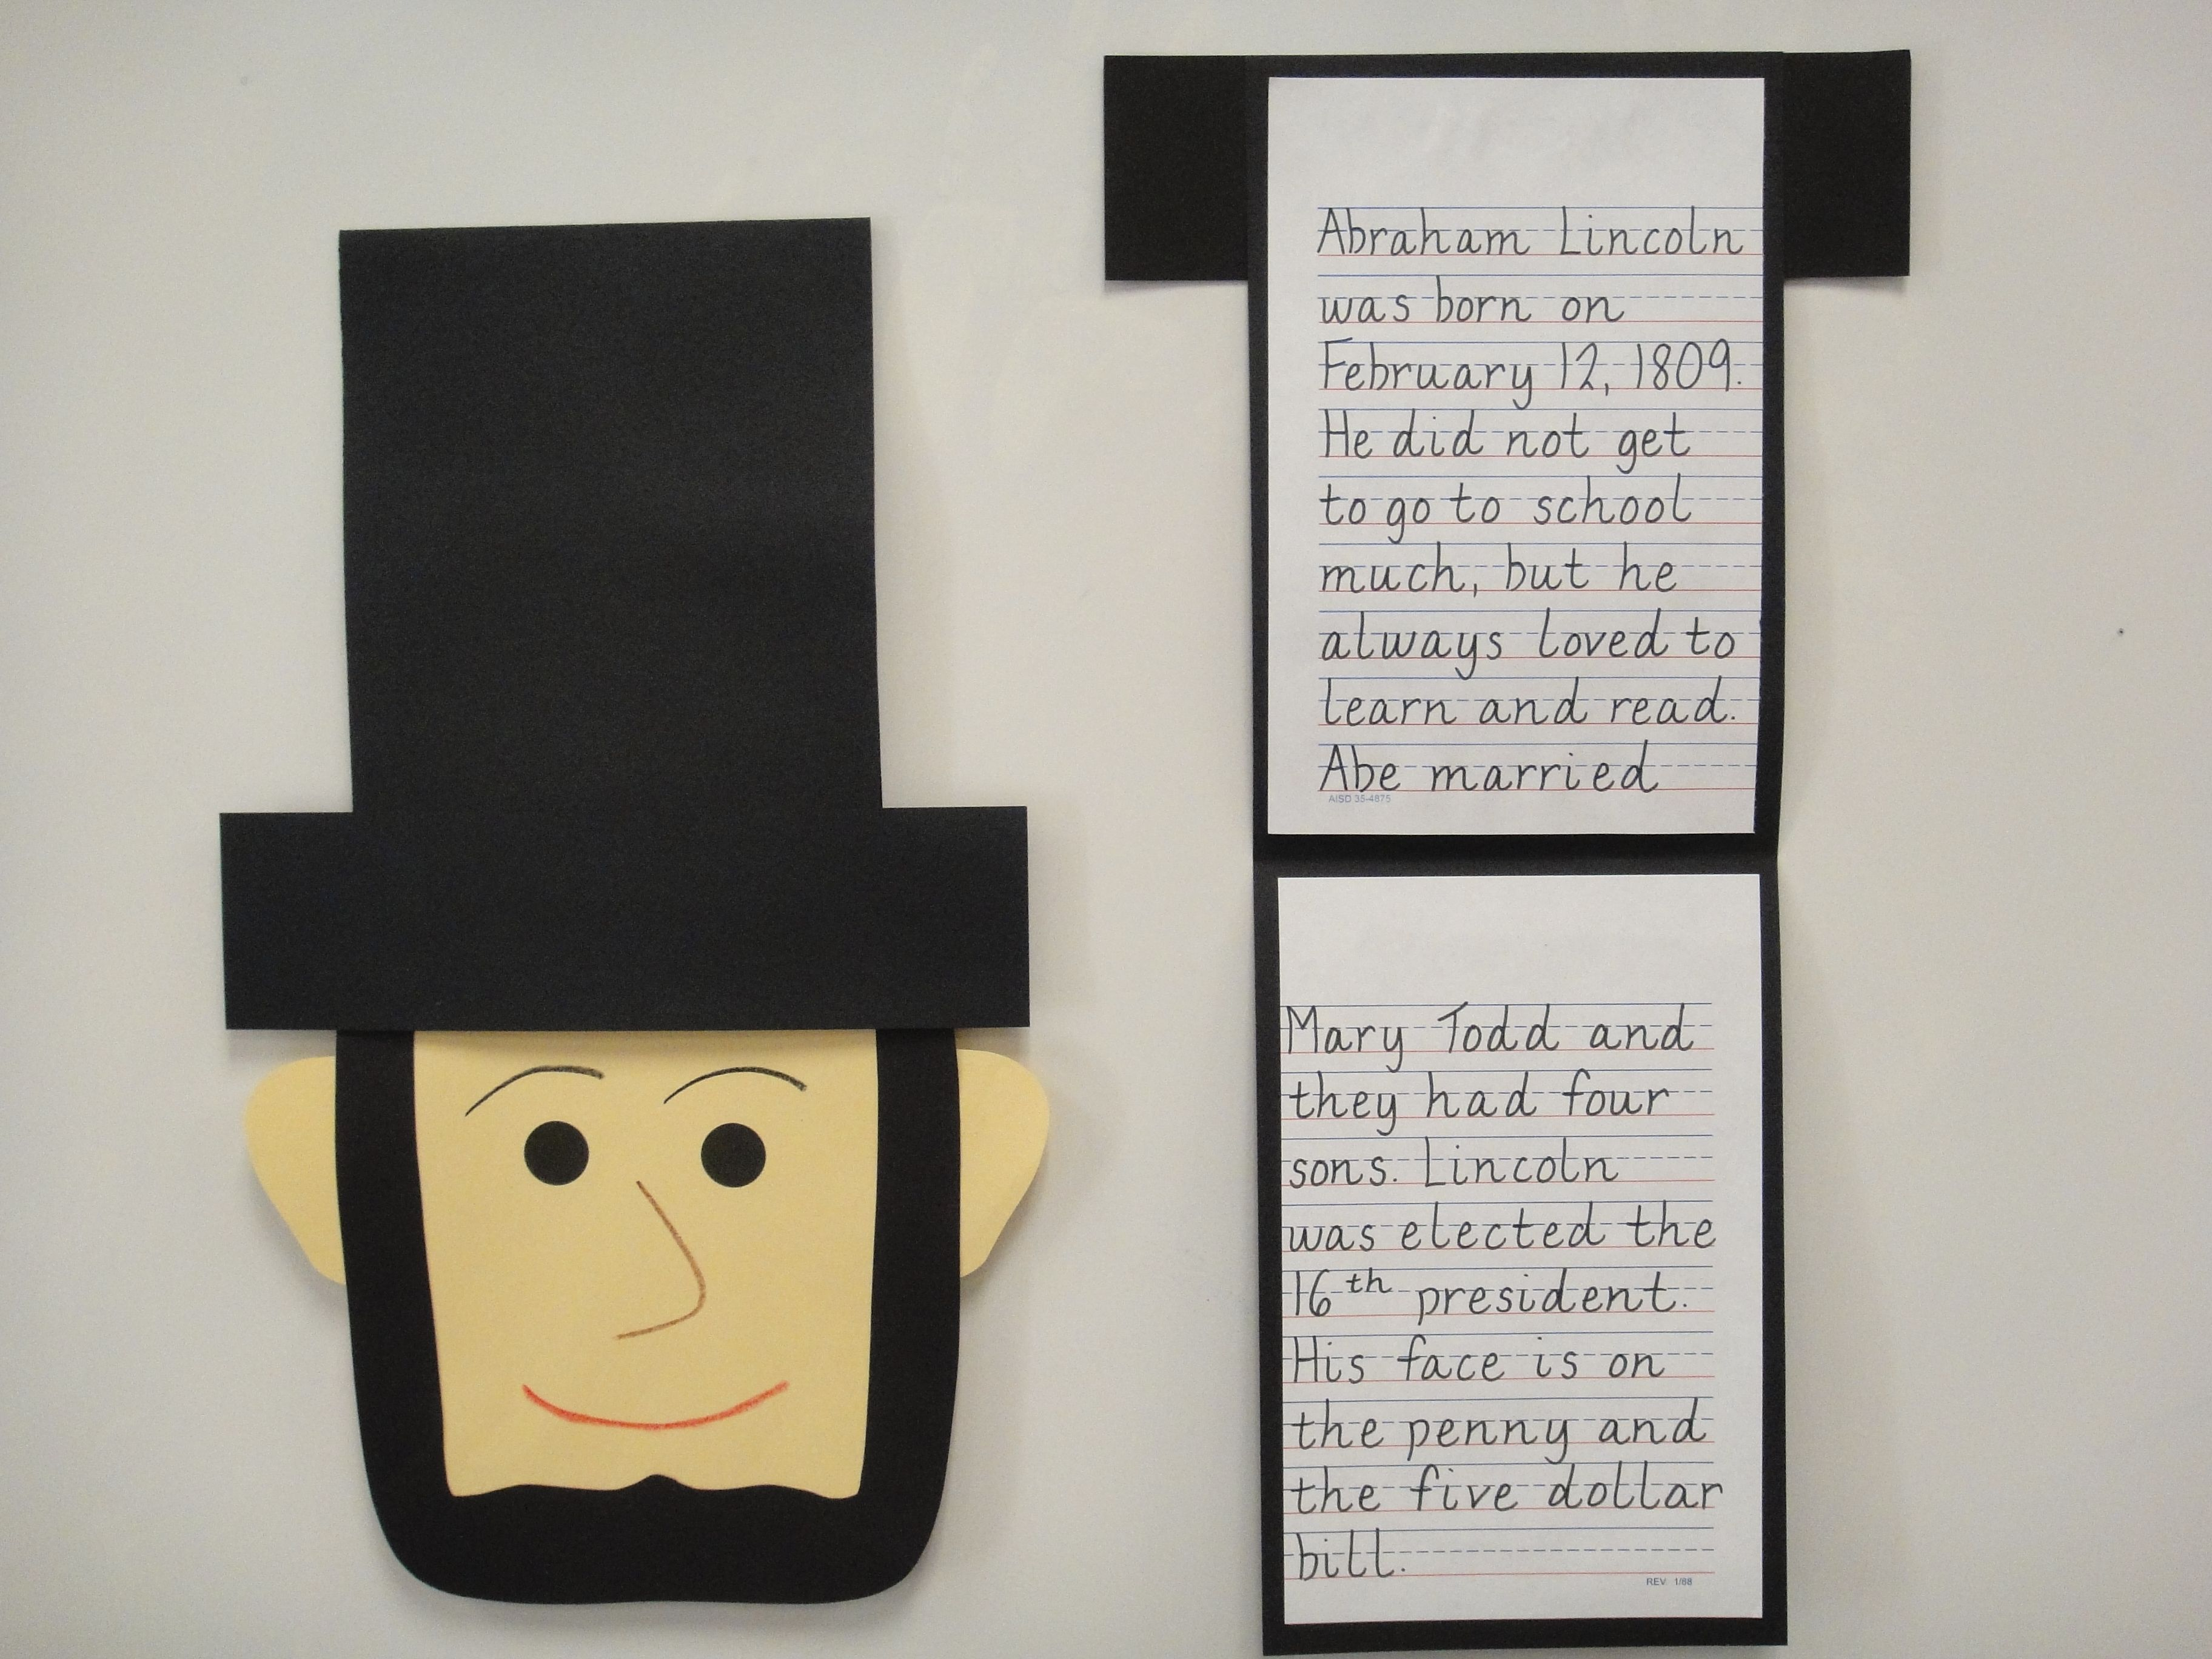 Abraham Lincoln Presidents Day